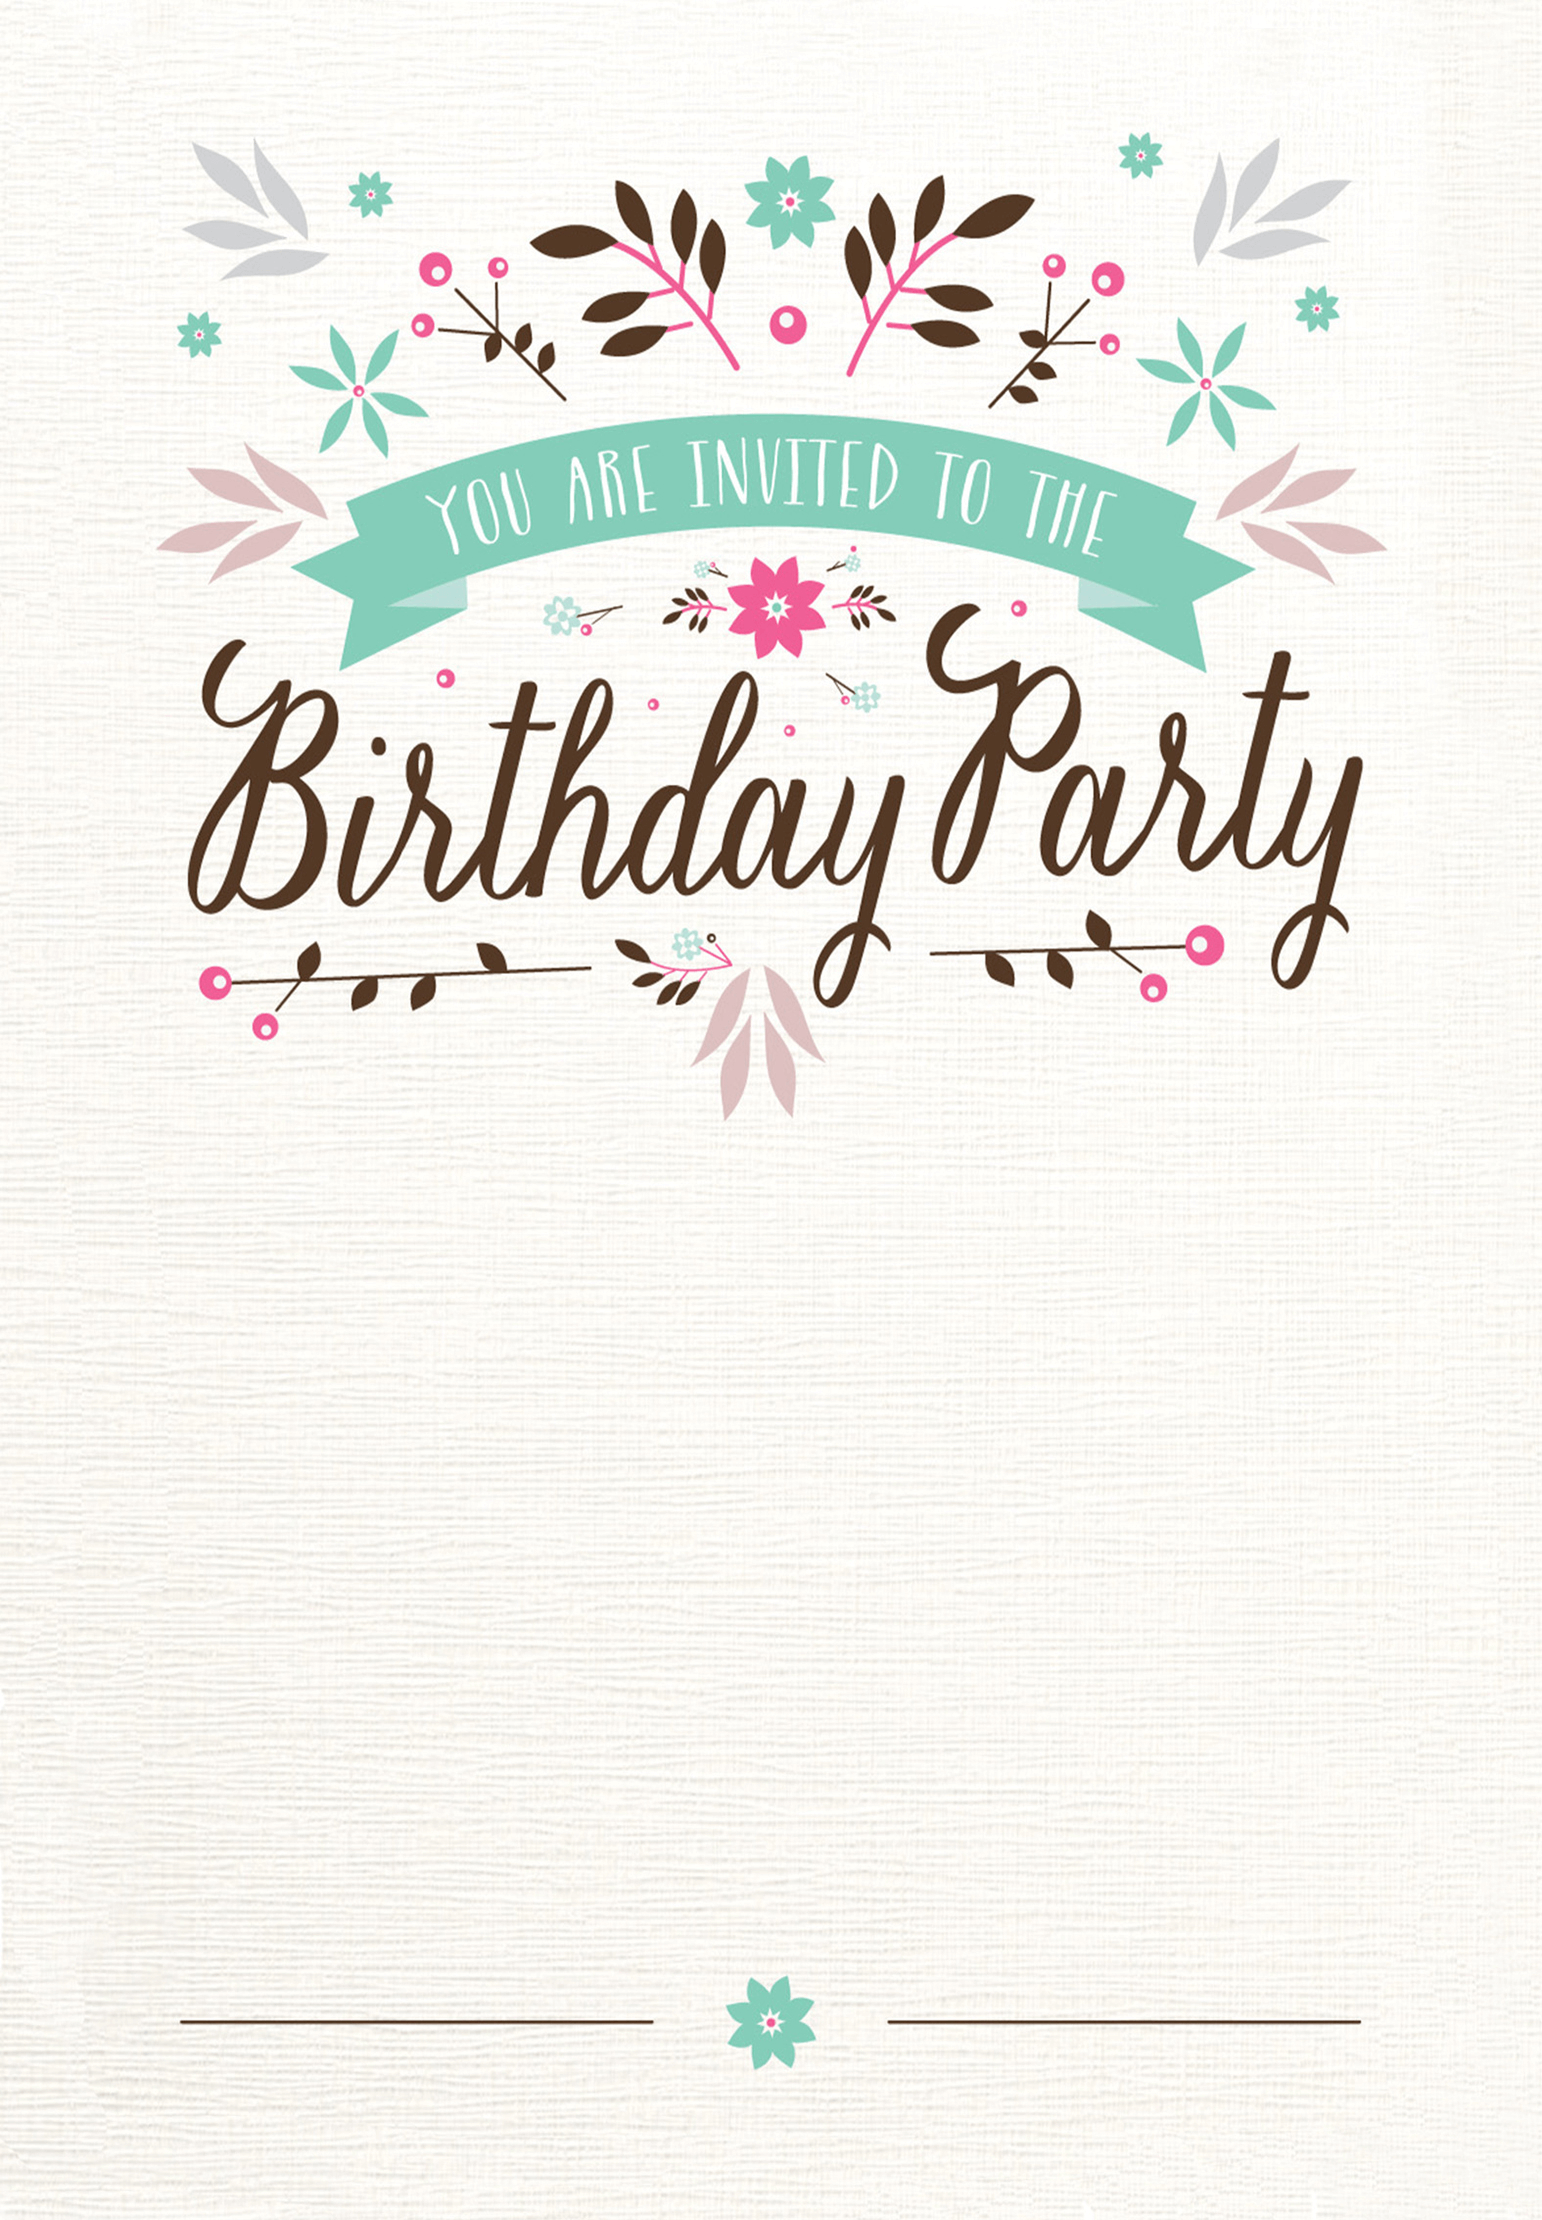 Flat Floral Free Printable Party Invitation Template Greetings Island Templat Undangan Ulang Tahun Kartu Ulang Tahun